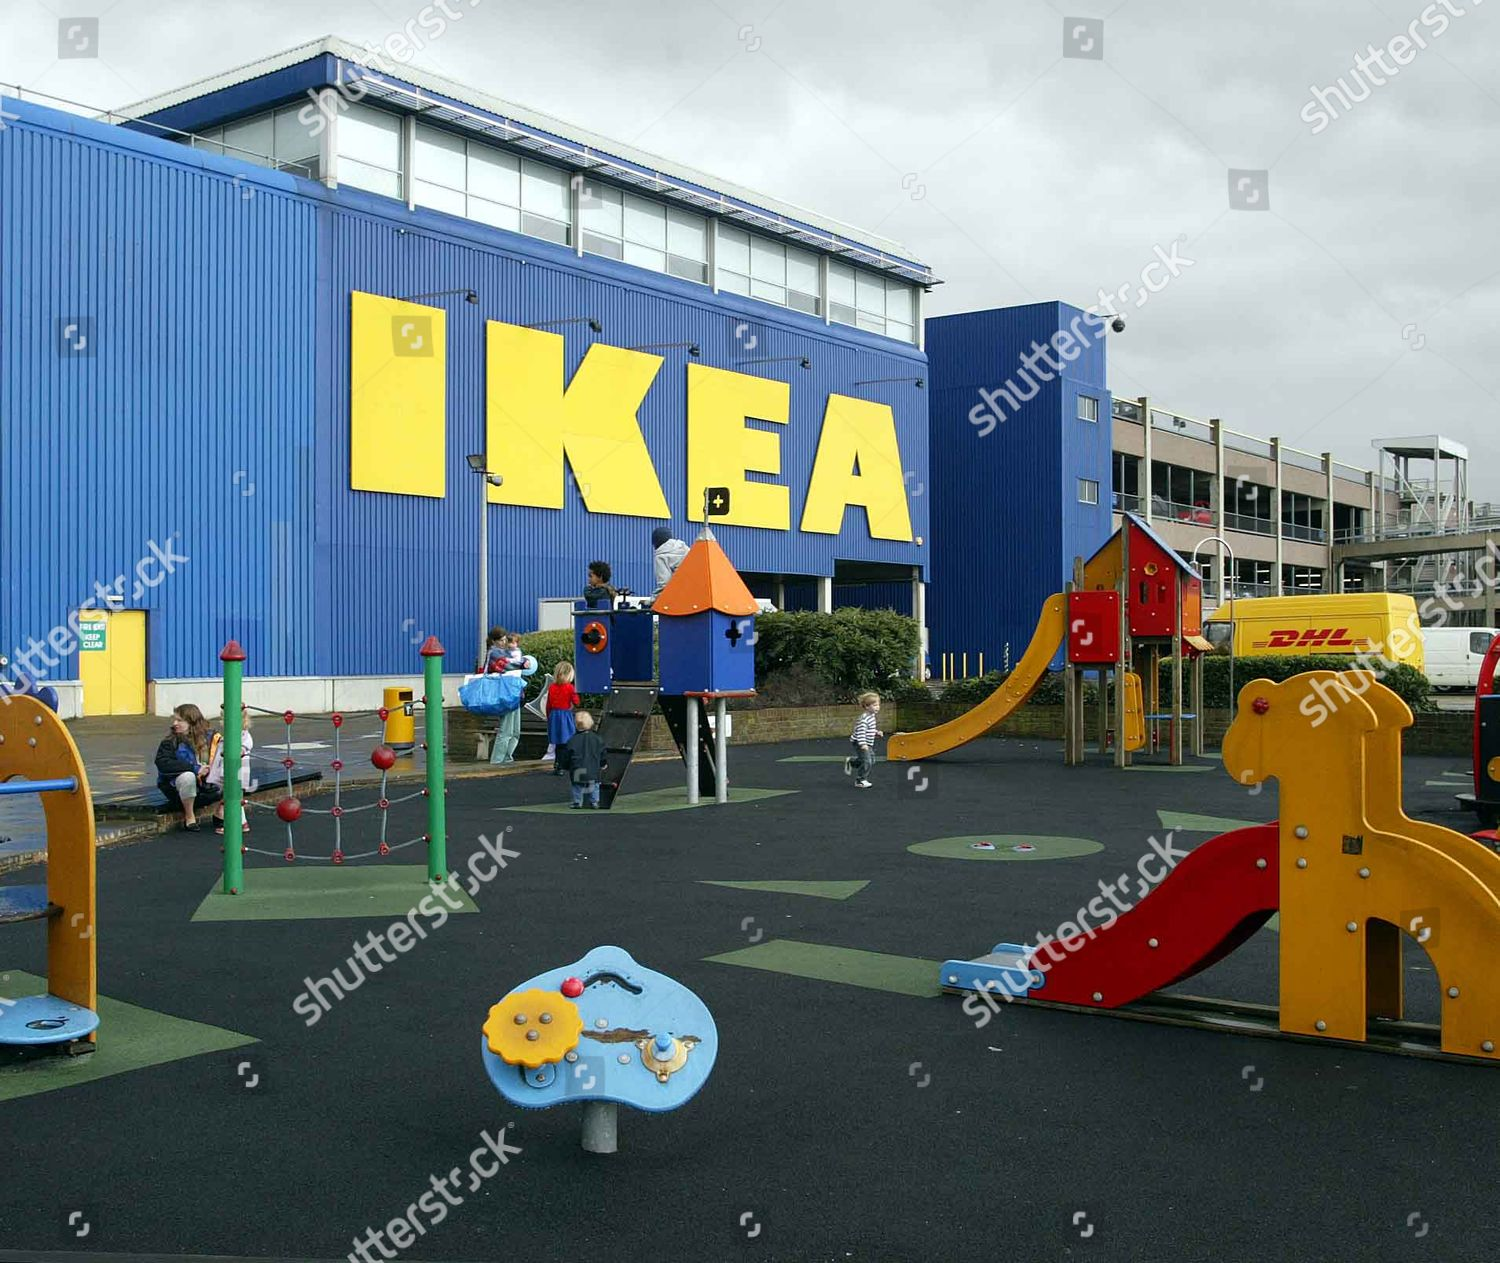 Ikea Play Area Childrens Play Area Outside Ikea Brent Cross Editorial Stock Photo